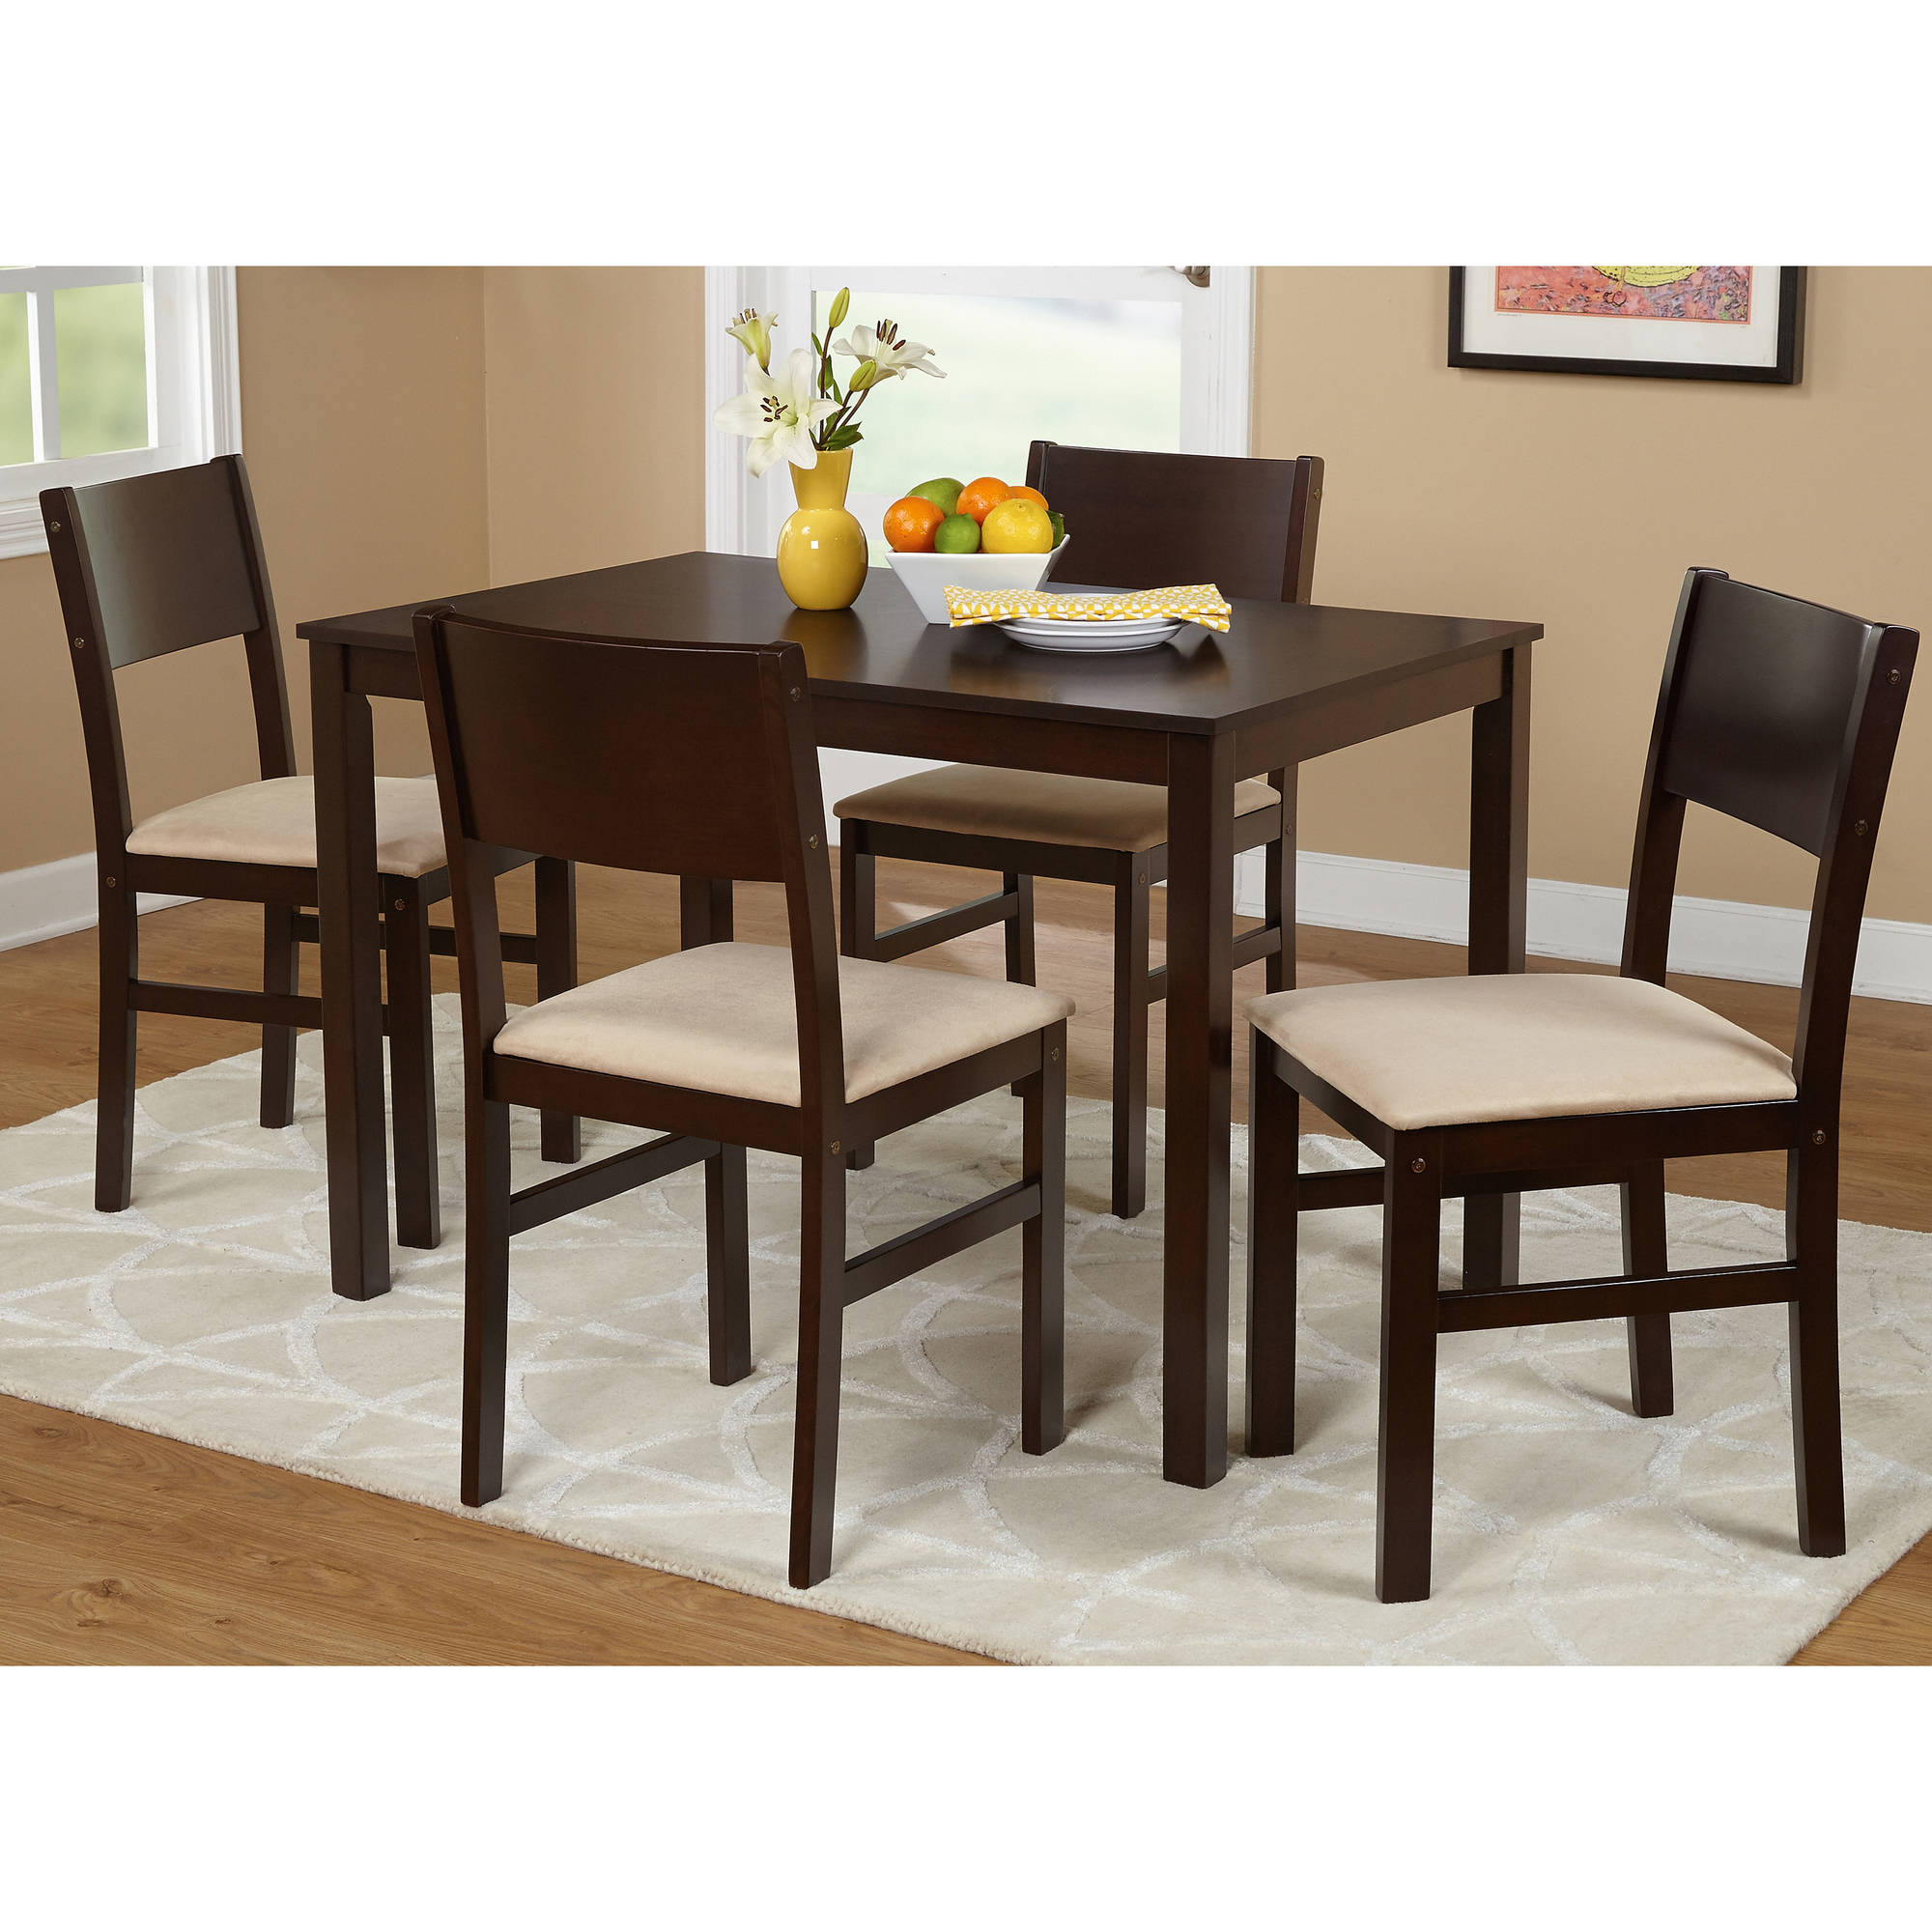 Tms Lucca 5 Piece Dining Set, Multiple Colors – Walmart With Regard To Recent 5 Piece Dining Sets (View 21 of 25)